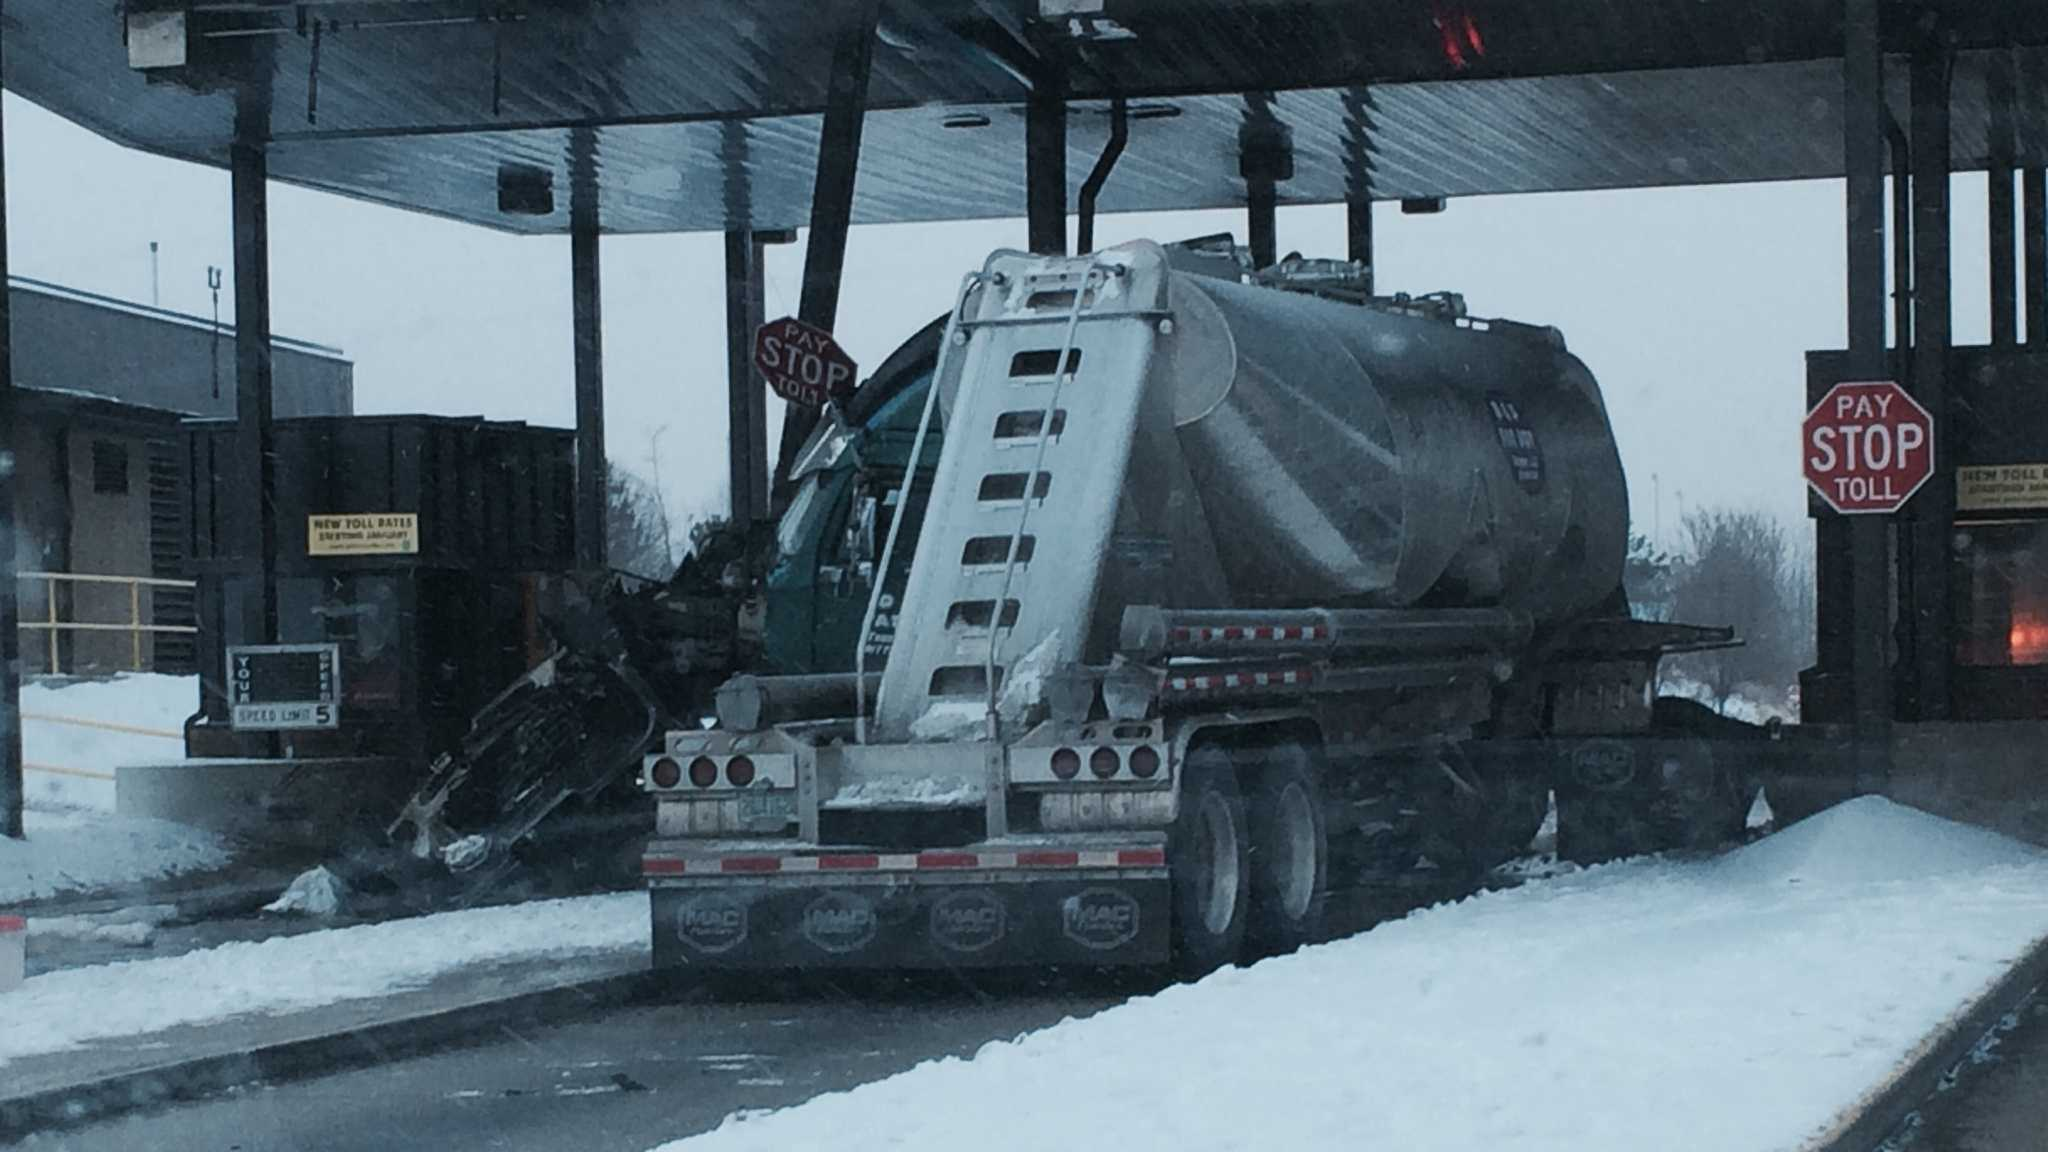 A tanker truck crashed into a toll booth at the Mon-Fayette Expressway.